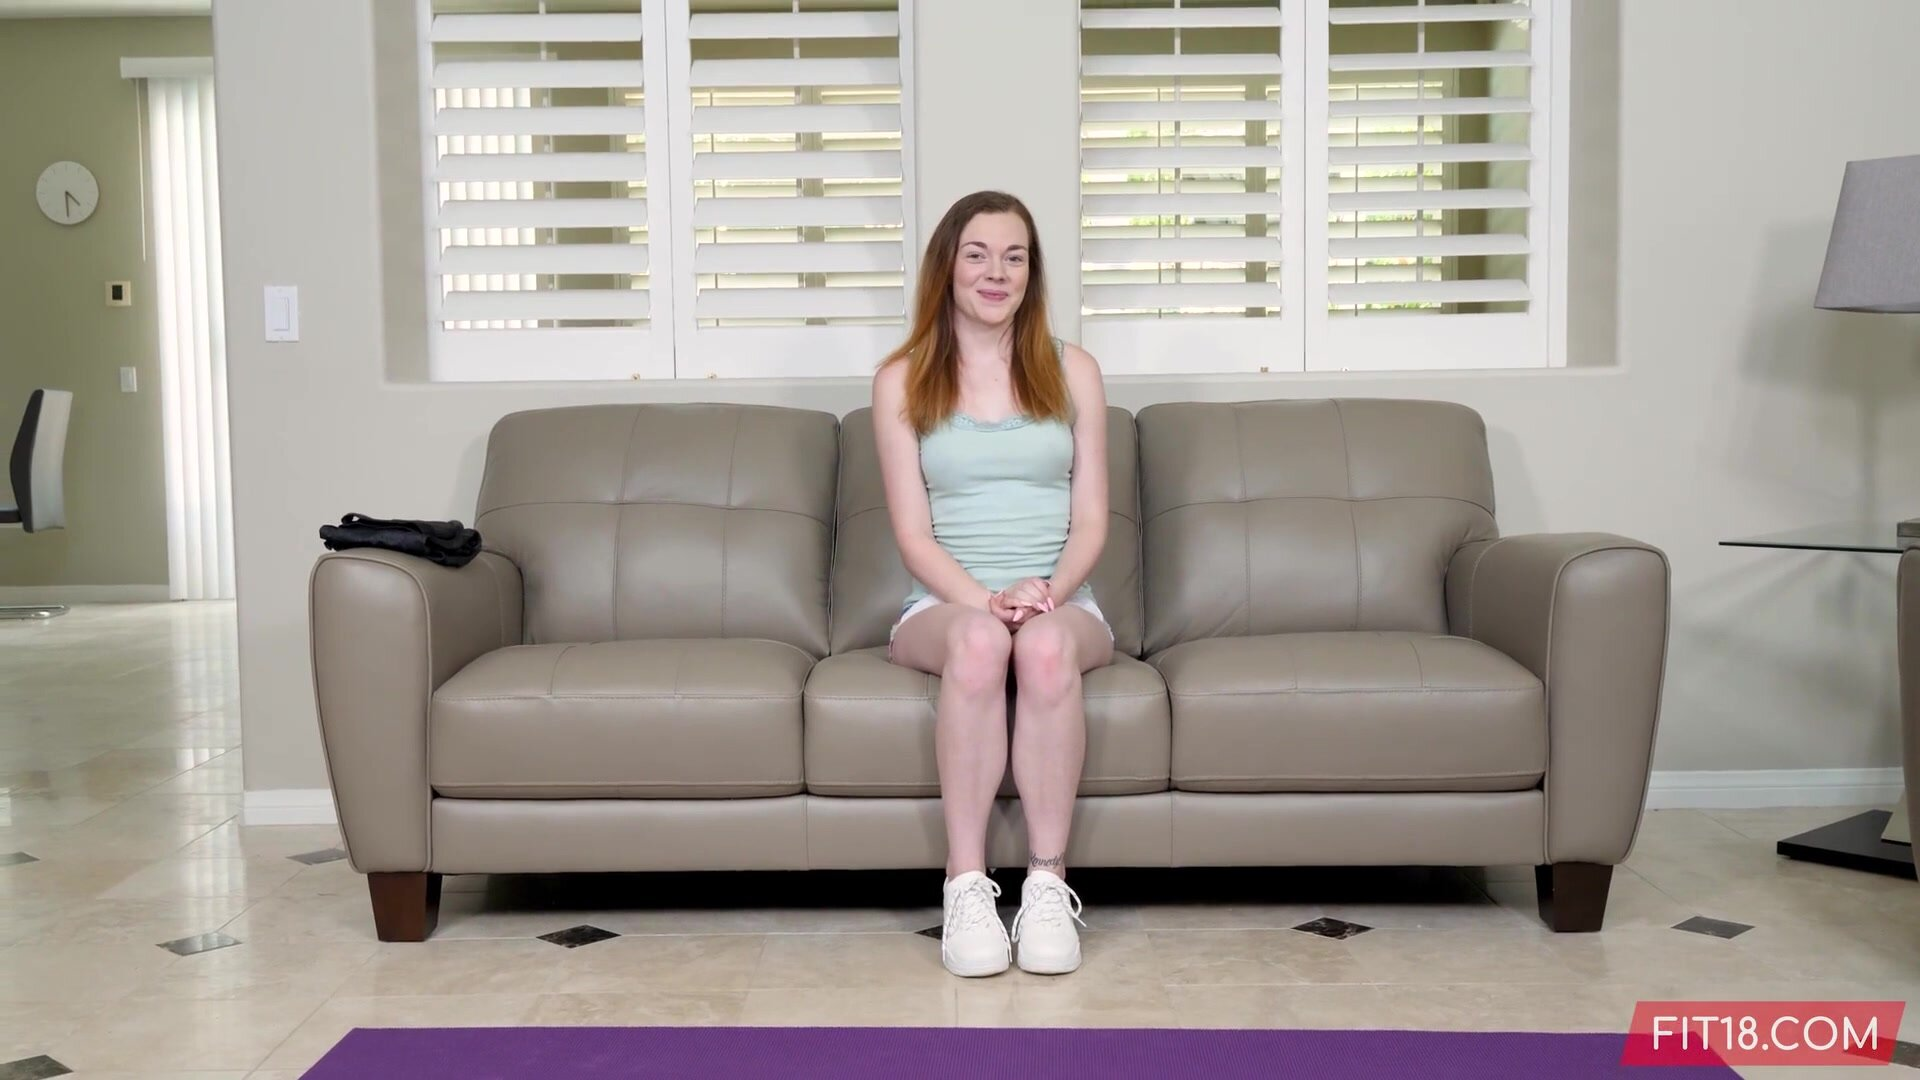 Samantha Reigns - Initial Casting